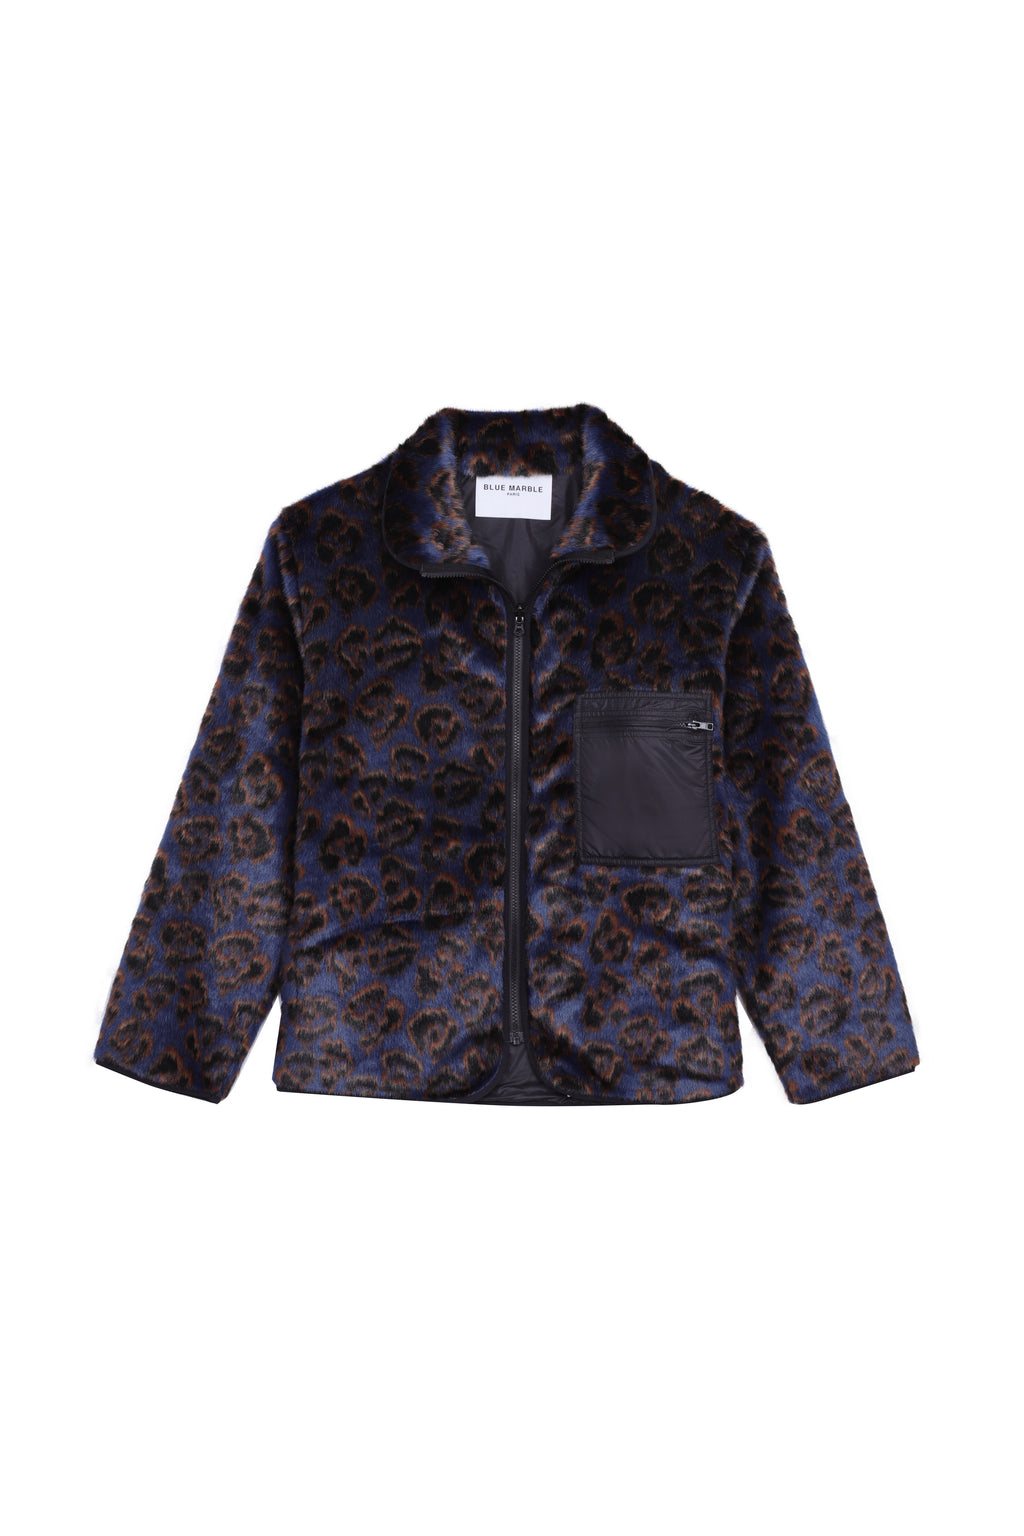 Printed Faux Fur Jacket (4578486353985)